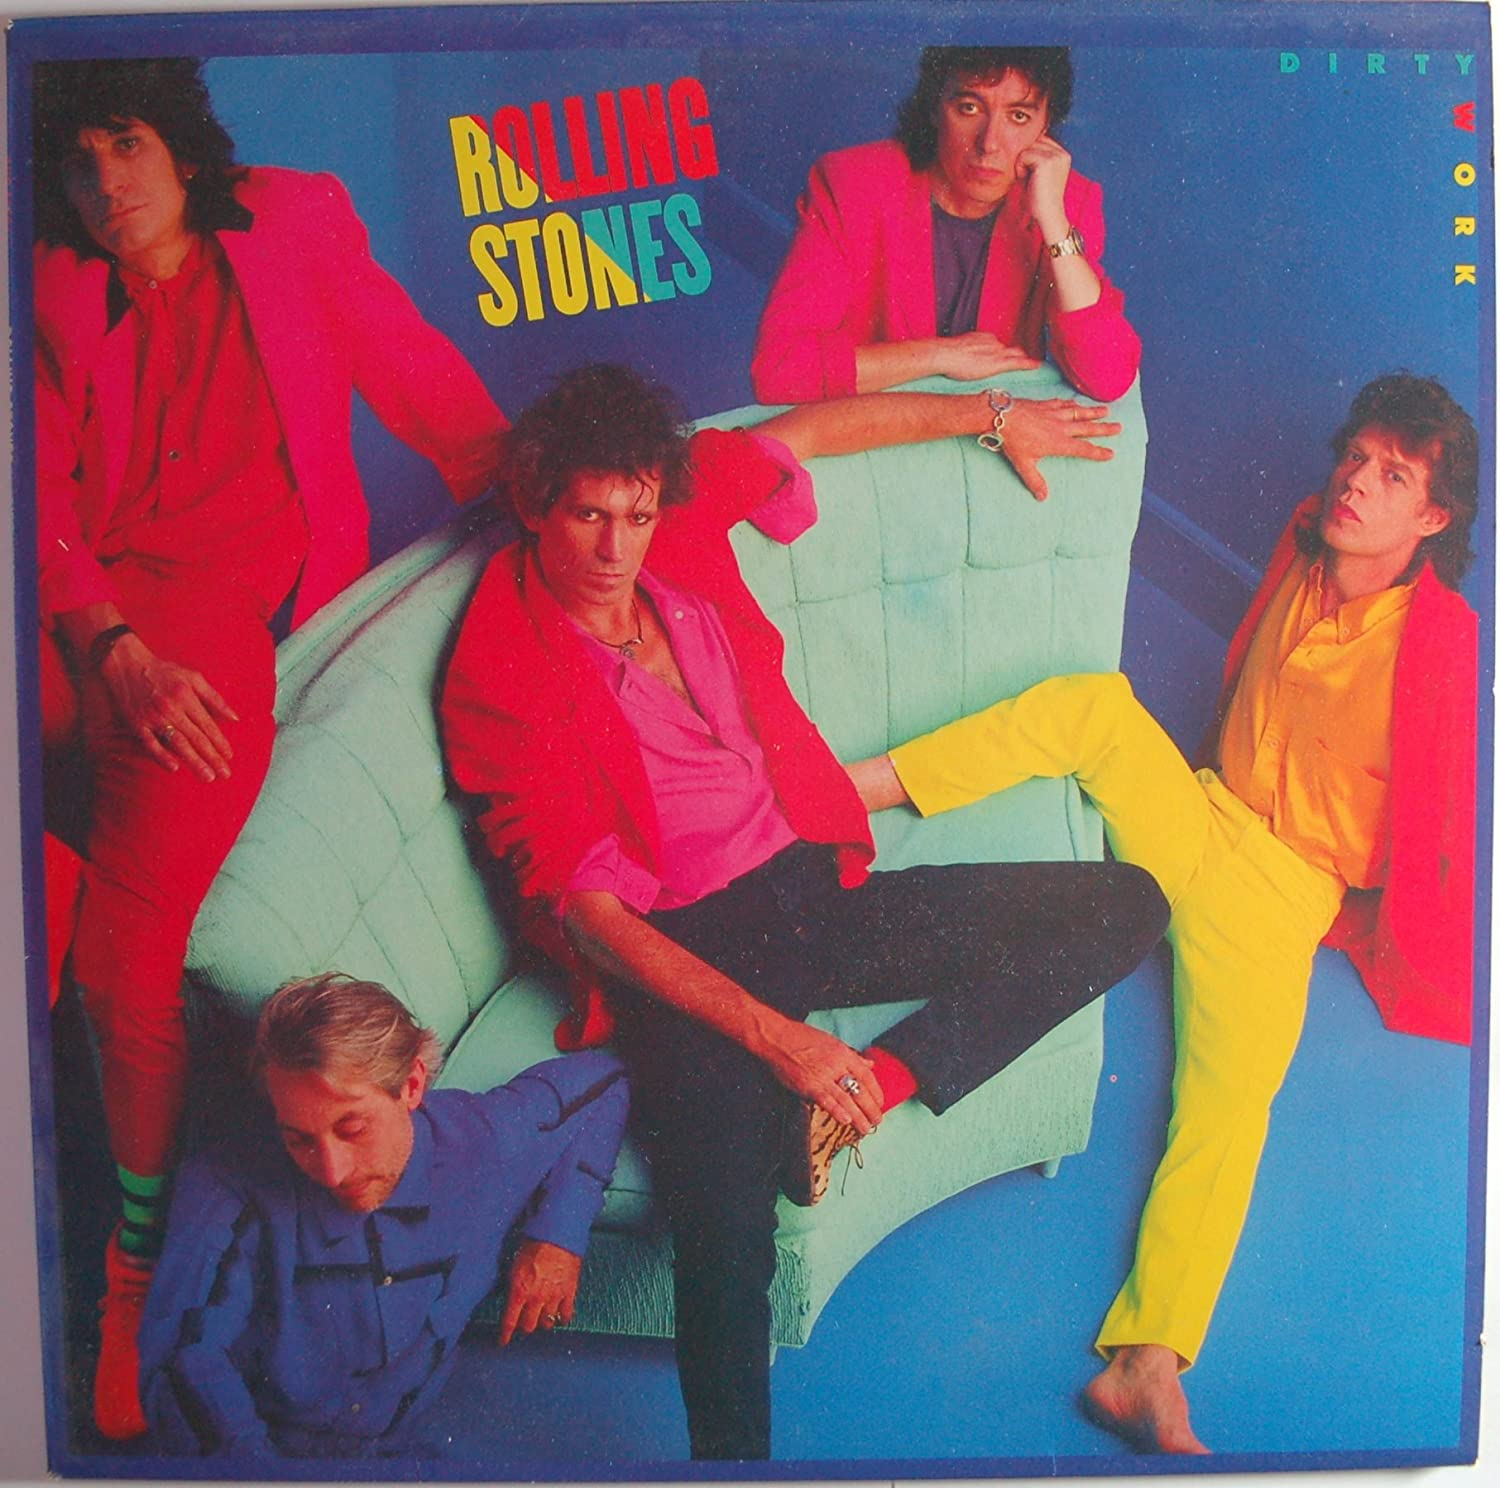 Rolling Stones, The - Dirty Work - Rolling Stones Records - CBS 86321, CBS - CBS 86321